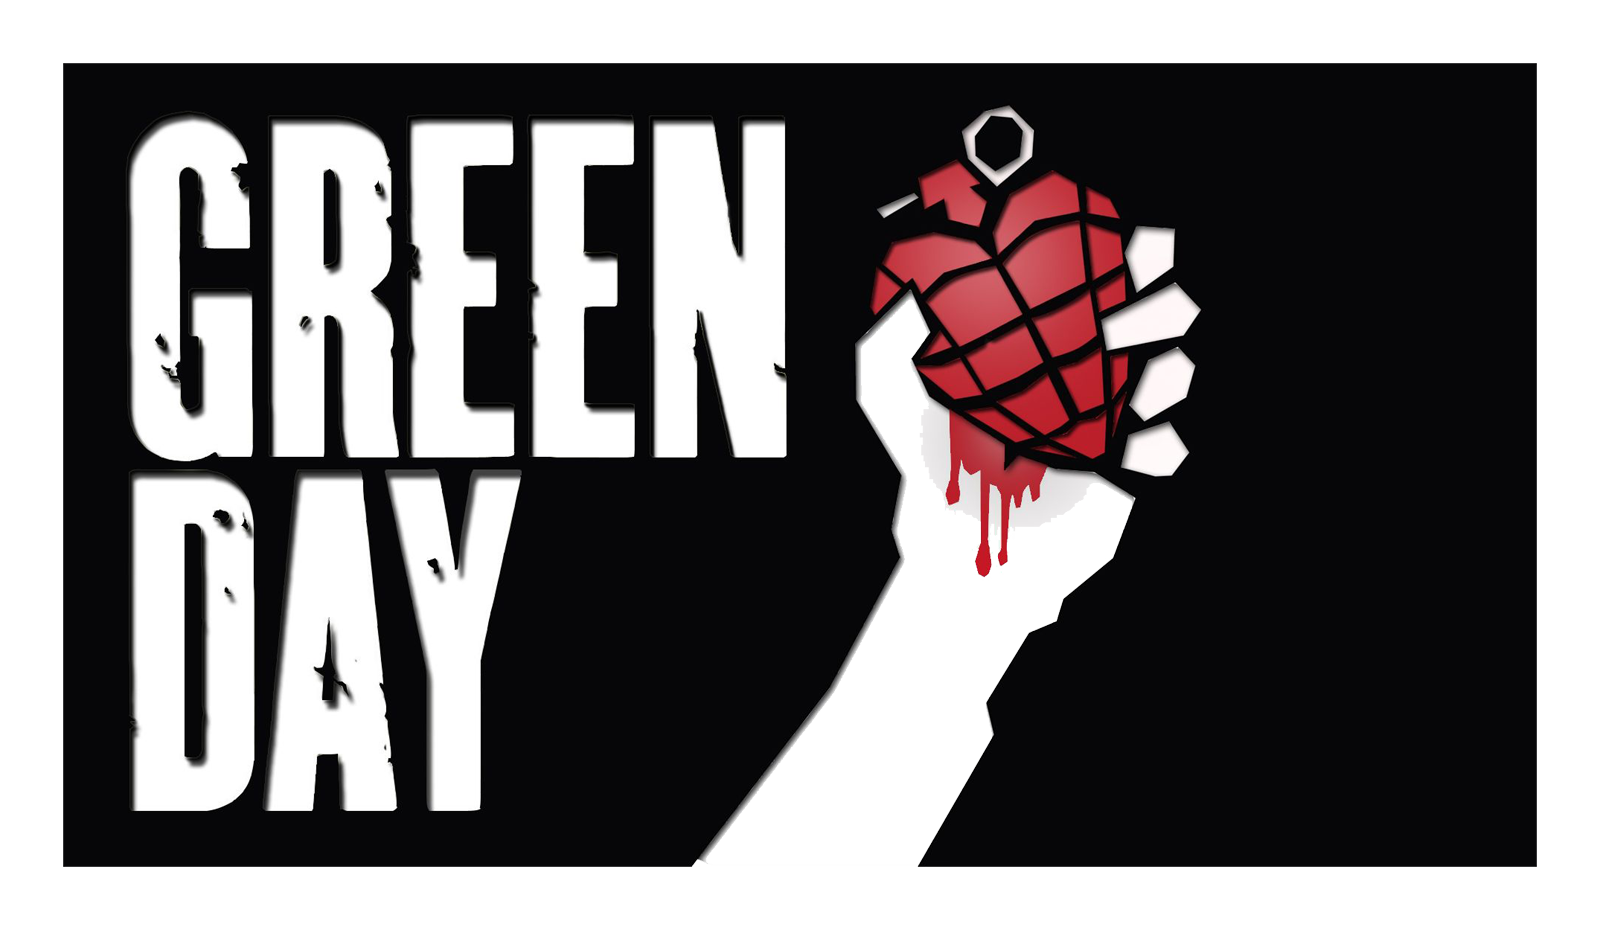 Green day band logo png. Symbol meaning history and